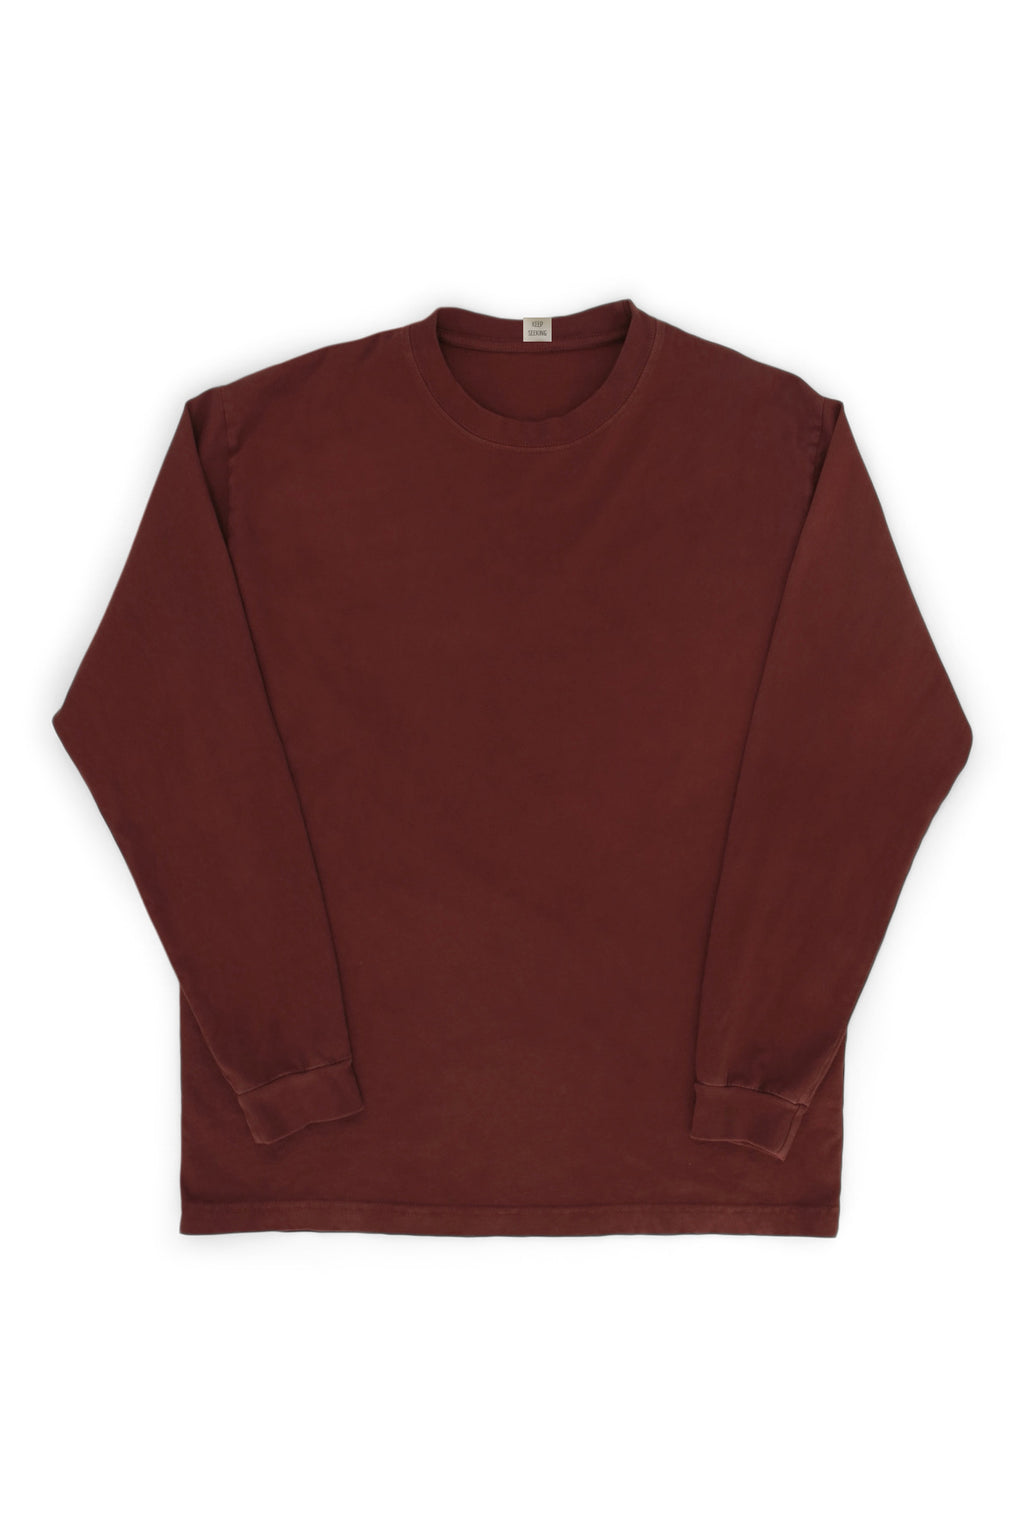 Flag Crew Long Sleeve Tee Plum